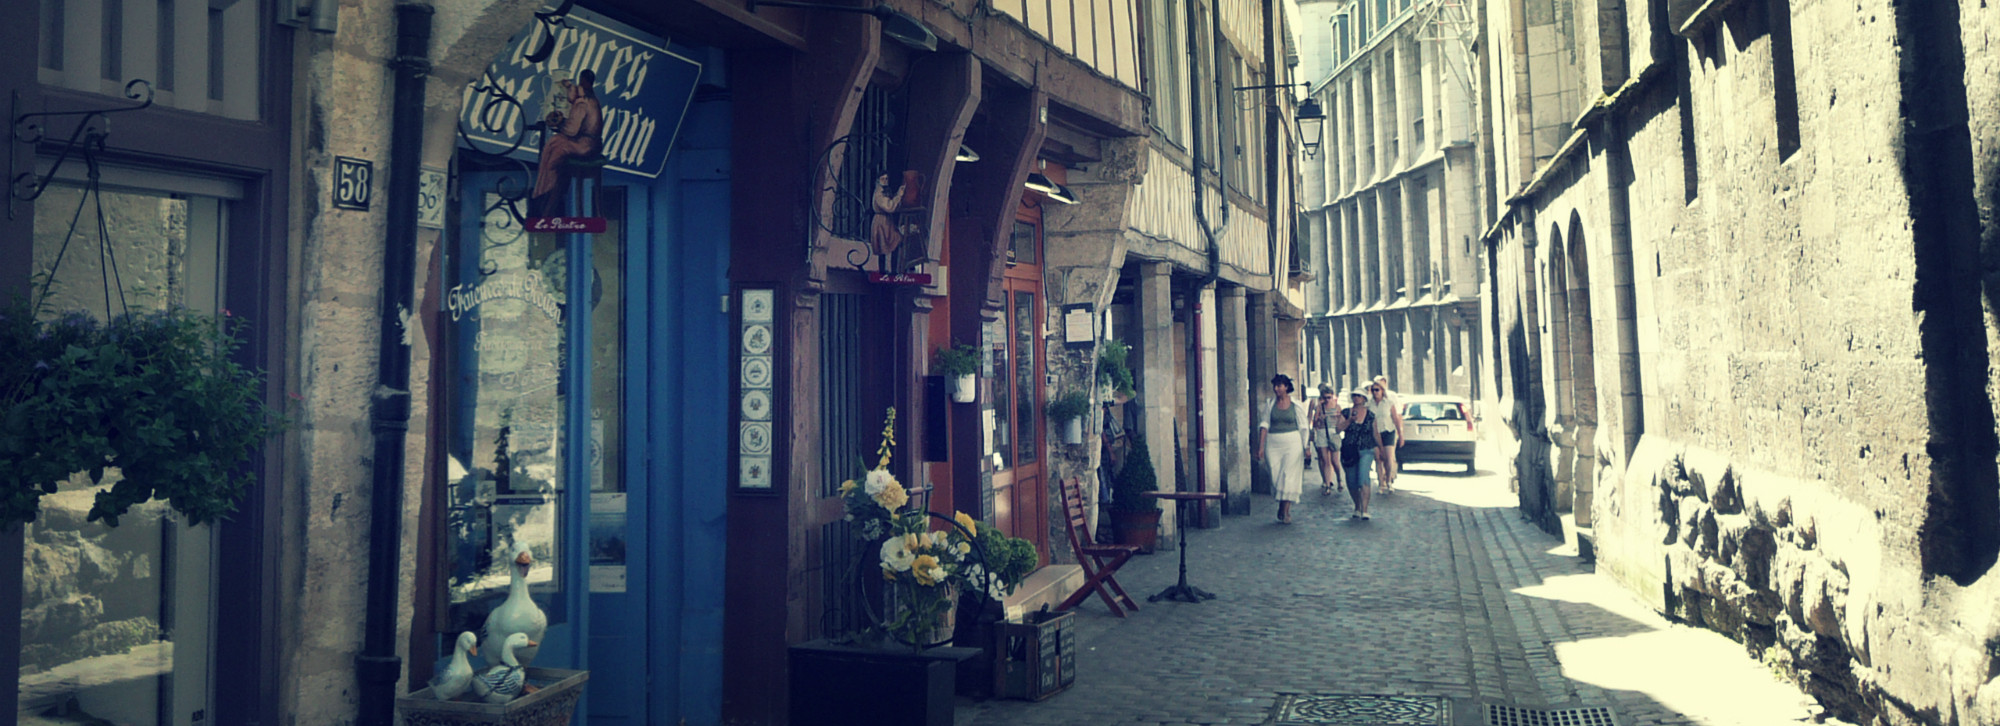 A way of life , Normandy gastronomy, shops in Rouen